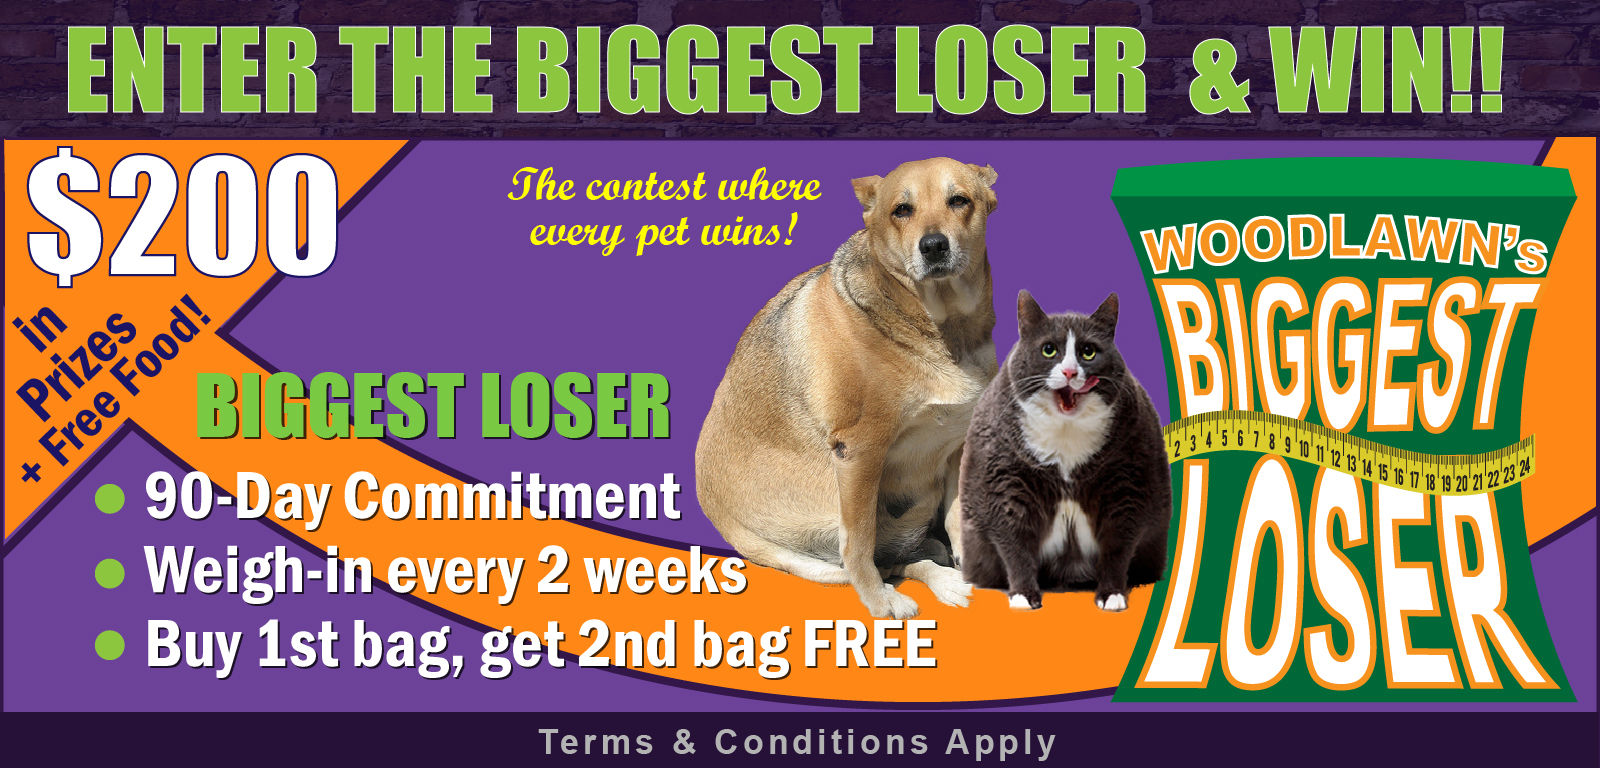 Enter Woodlawn's Biggest Loser Contest and win prizes